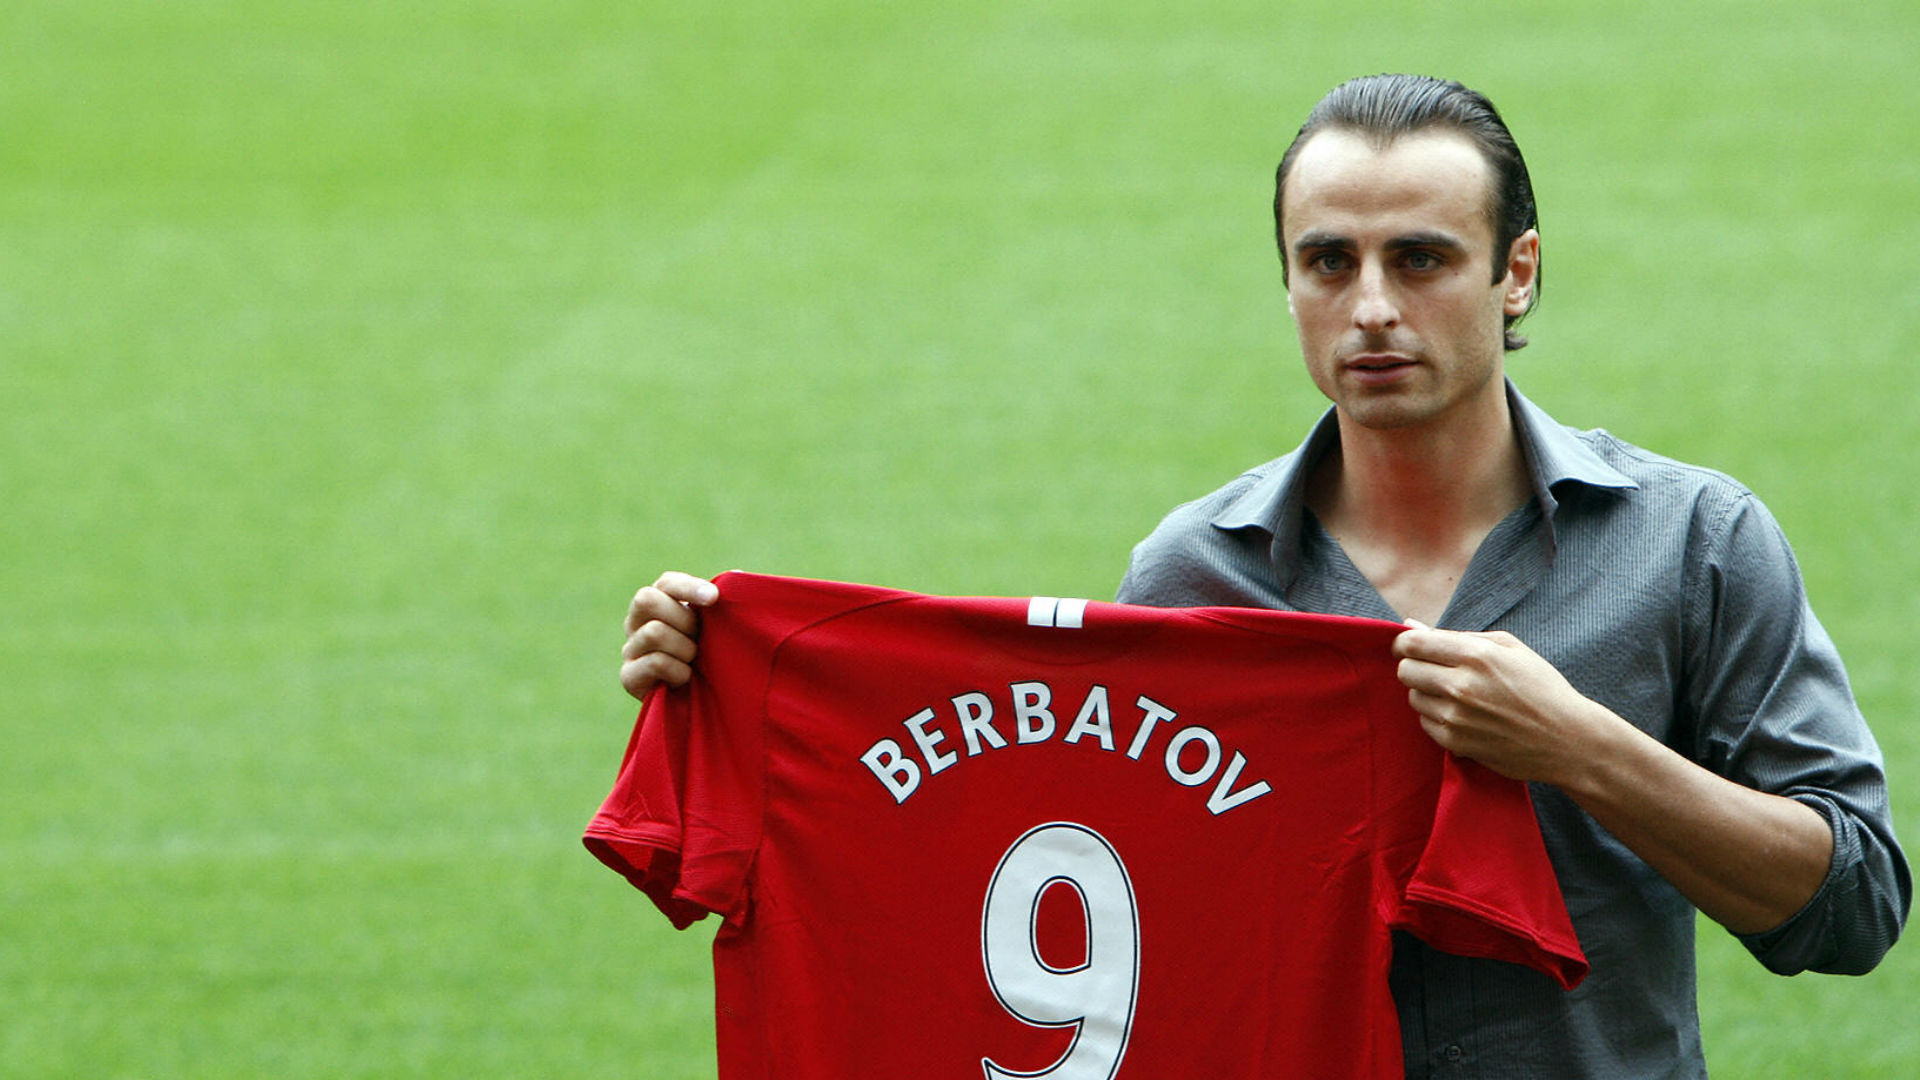 Image result for berbatov manchester city